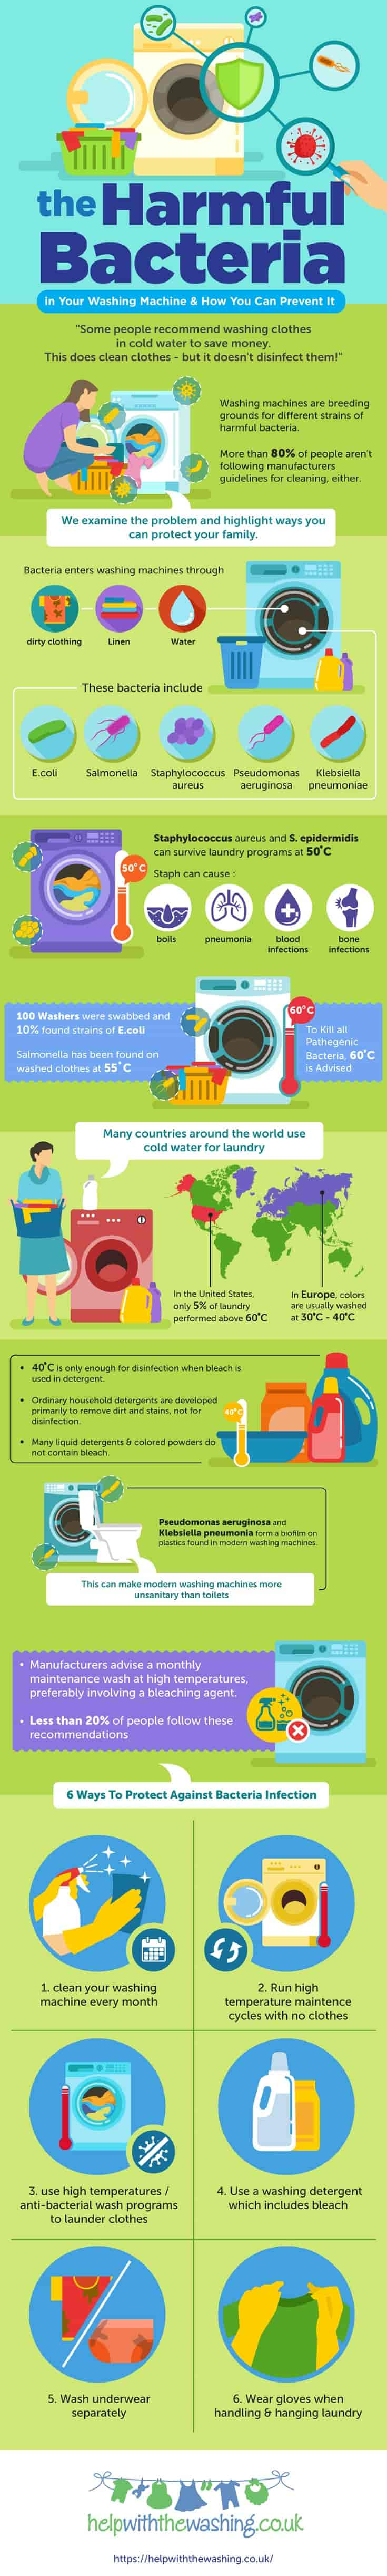 Infographic: How Doing The Laundry Exposes You To E.Coli, Salmonella & Staph